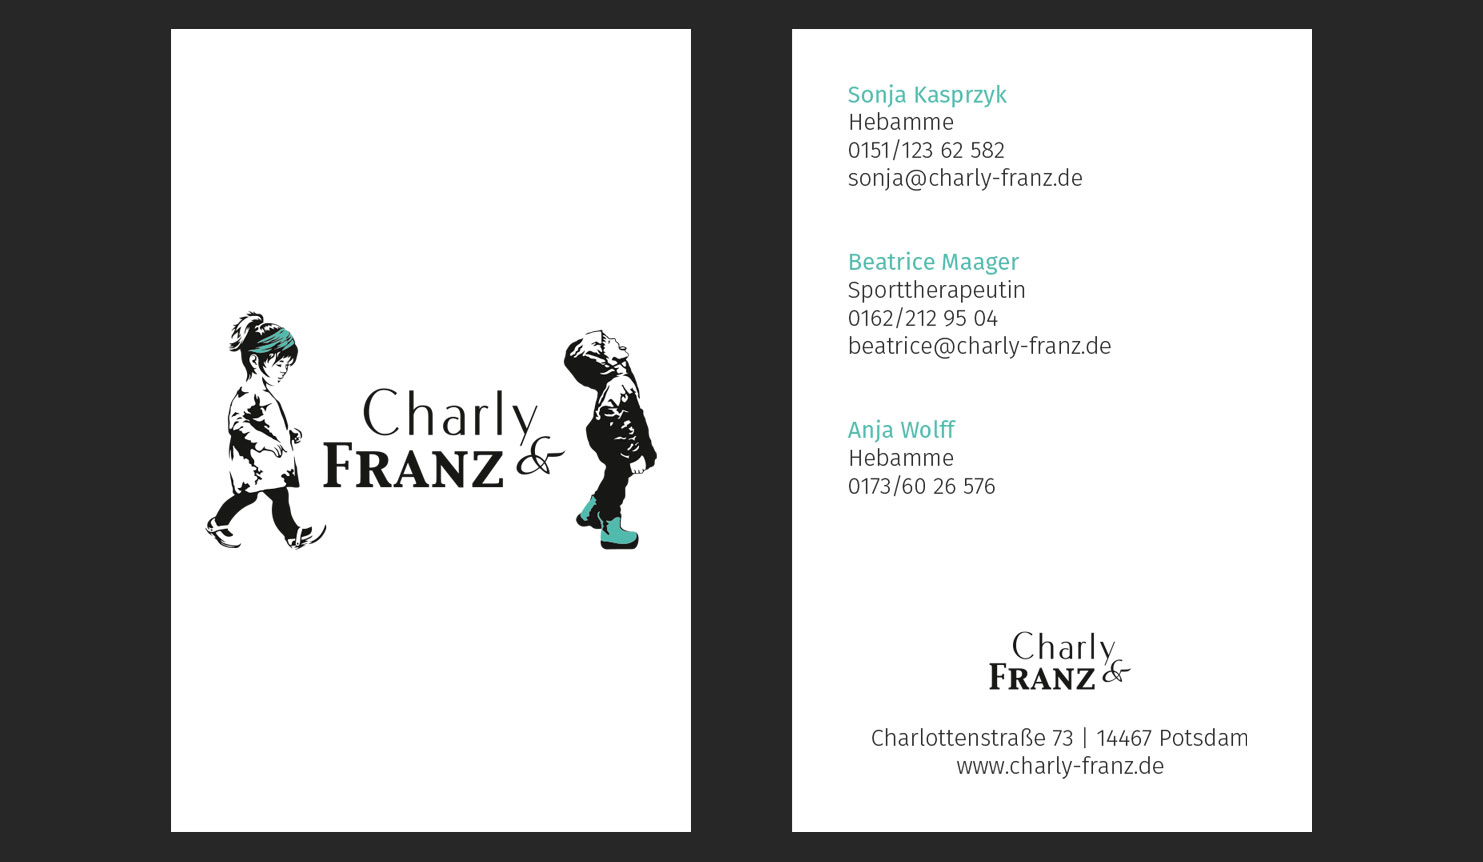 Gründerpaket Charly Franz Sumid Consult